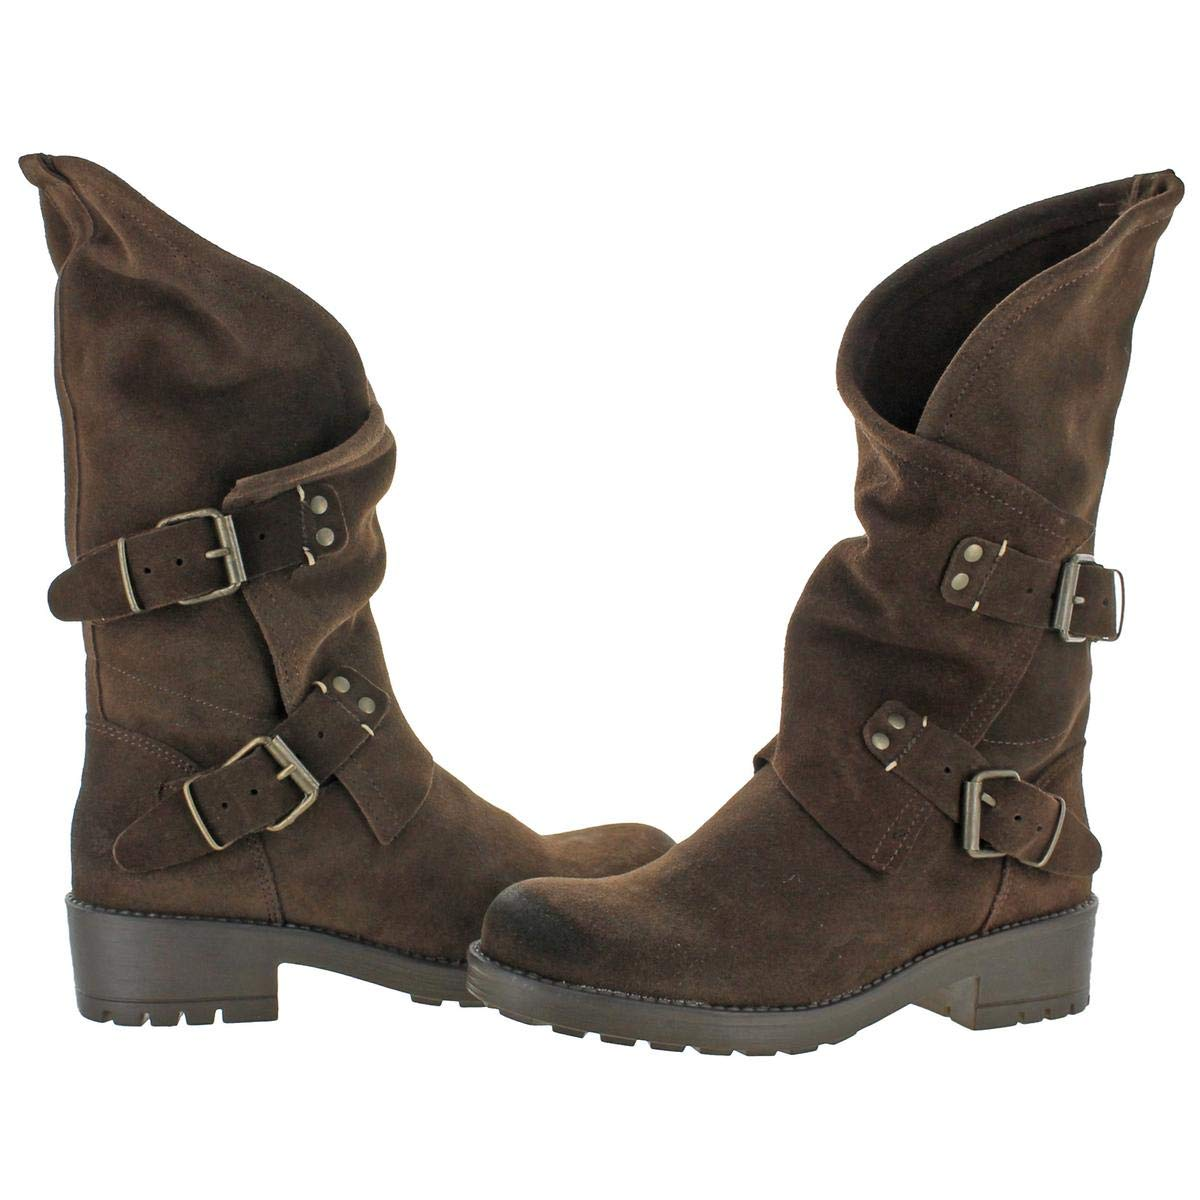 d85a45ba04d6 Coolway Alida - Brown Suede Slouchy Dual Buckle Boot  Amazon.ca  Shoes    Handbags